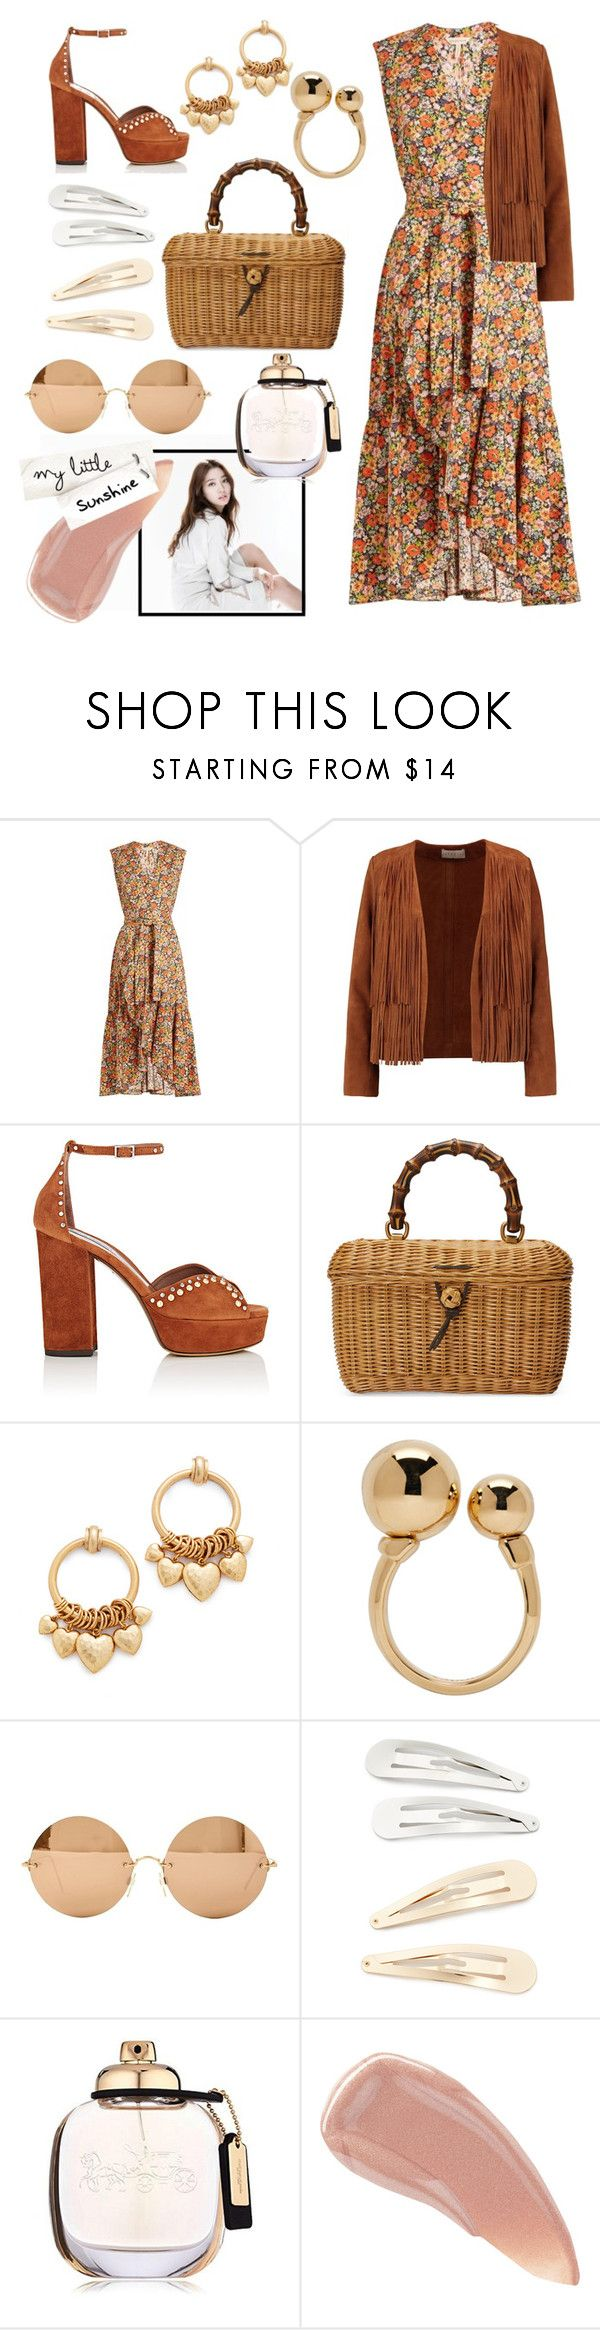 """""""My little sunshine"""" by eversmile ❤ liked on Polyvore featuring Rebecca Taylor, Sandro, Tabitha Simmons, Gucci, Elizabeth Cole, Chloé, Shin Choi, Victoria Beckham, Kitsch and Coach"""